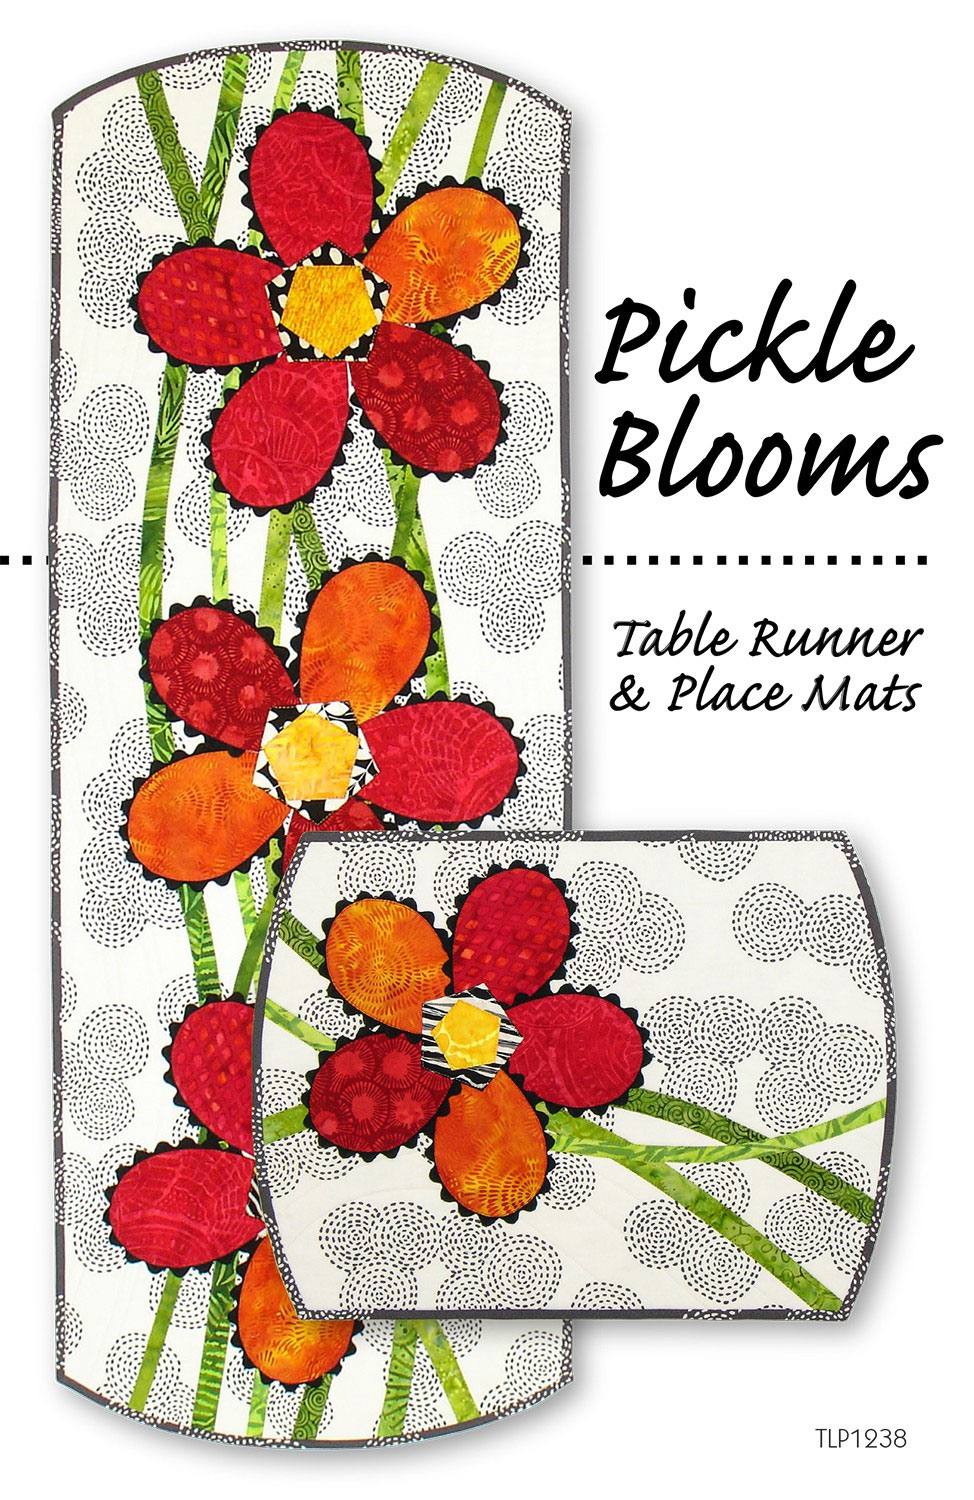 Pickle-Blooms-table-runner-and-placemats-sewing-pattern-Tiger-Lily-Press-front